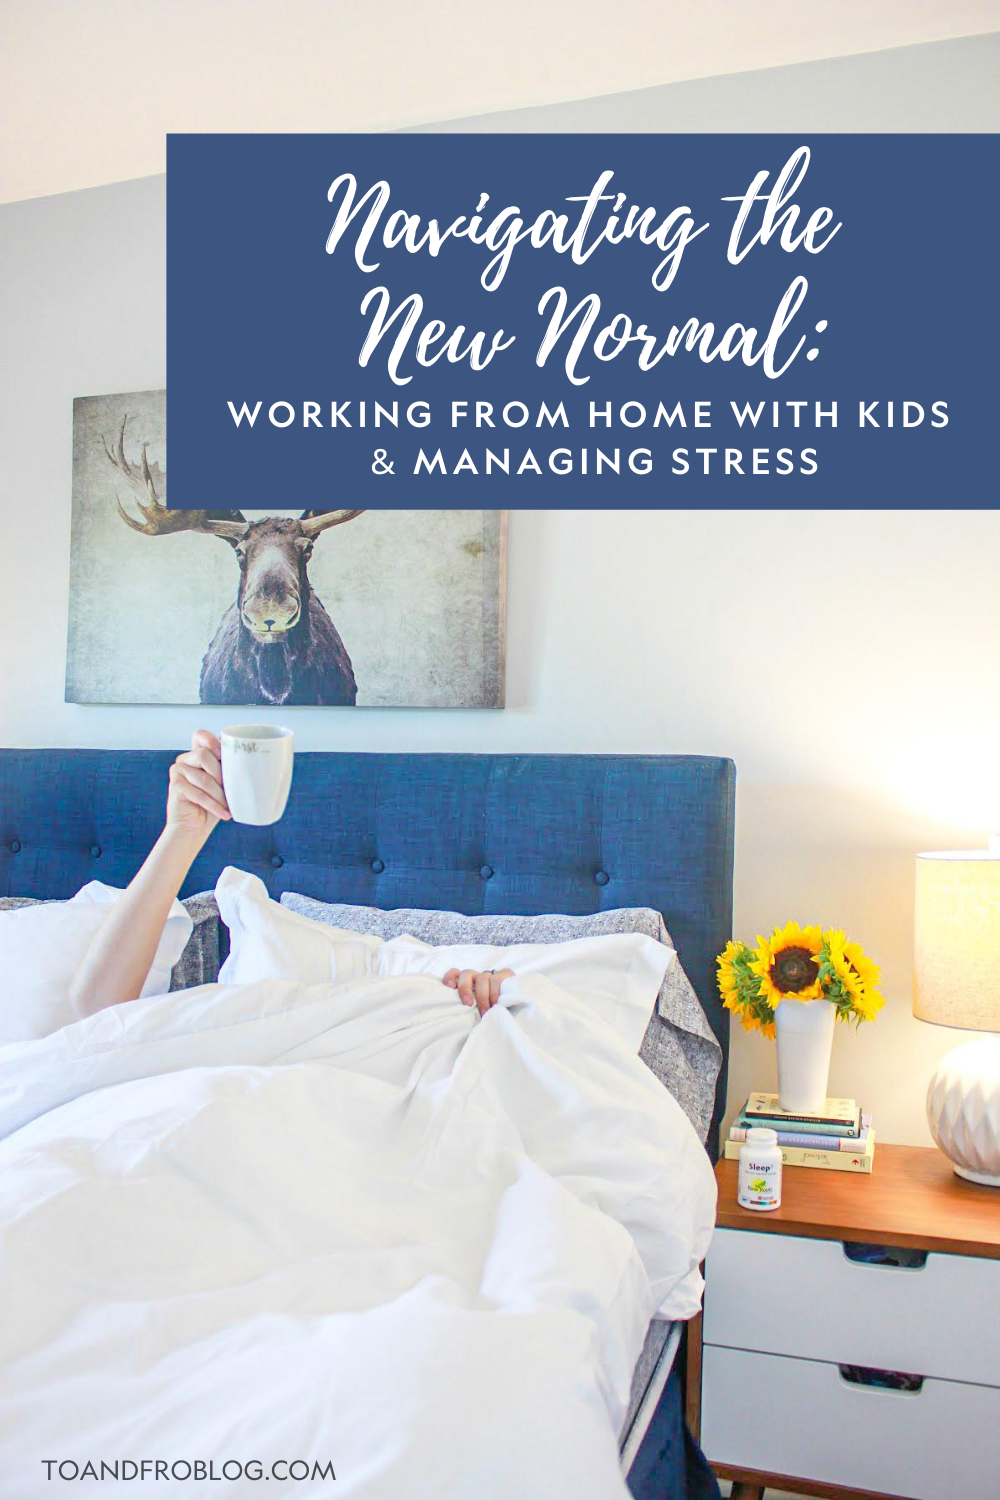 Navigating the New Normal - Working From Home with Kids & Managing Stress